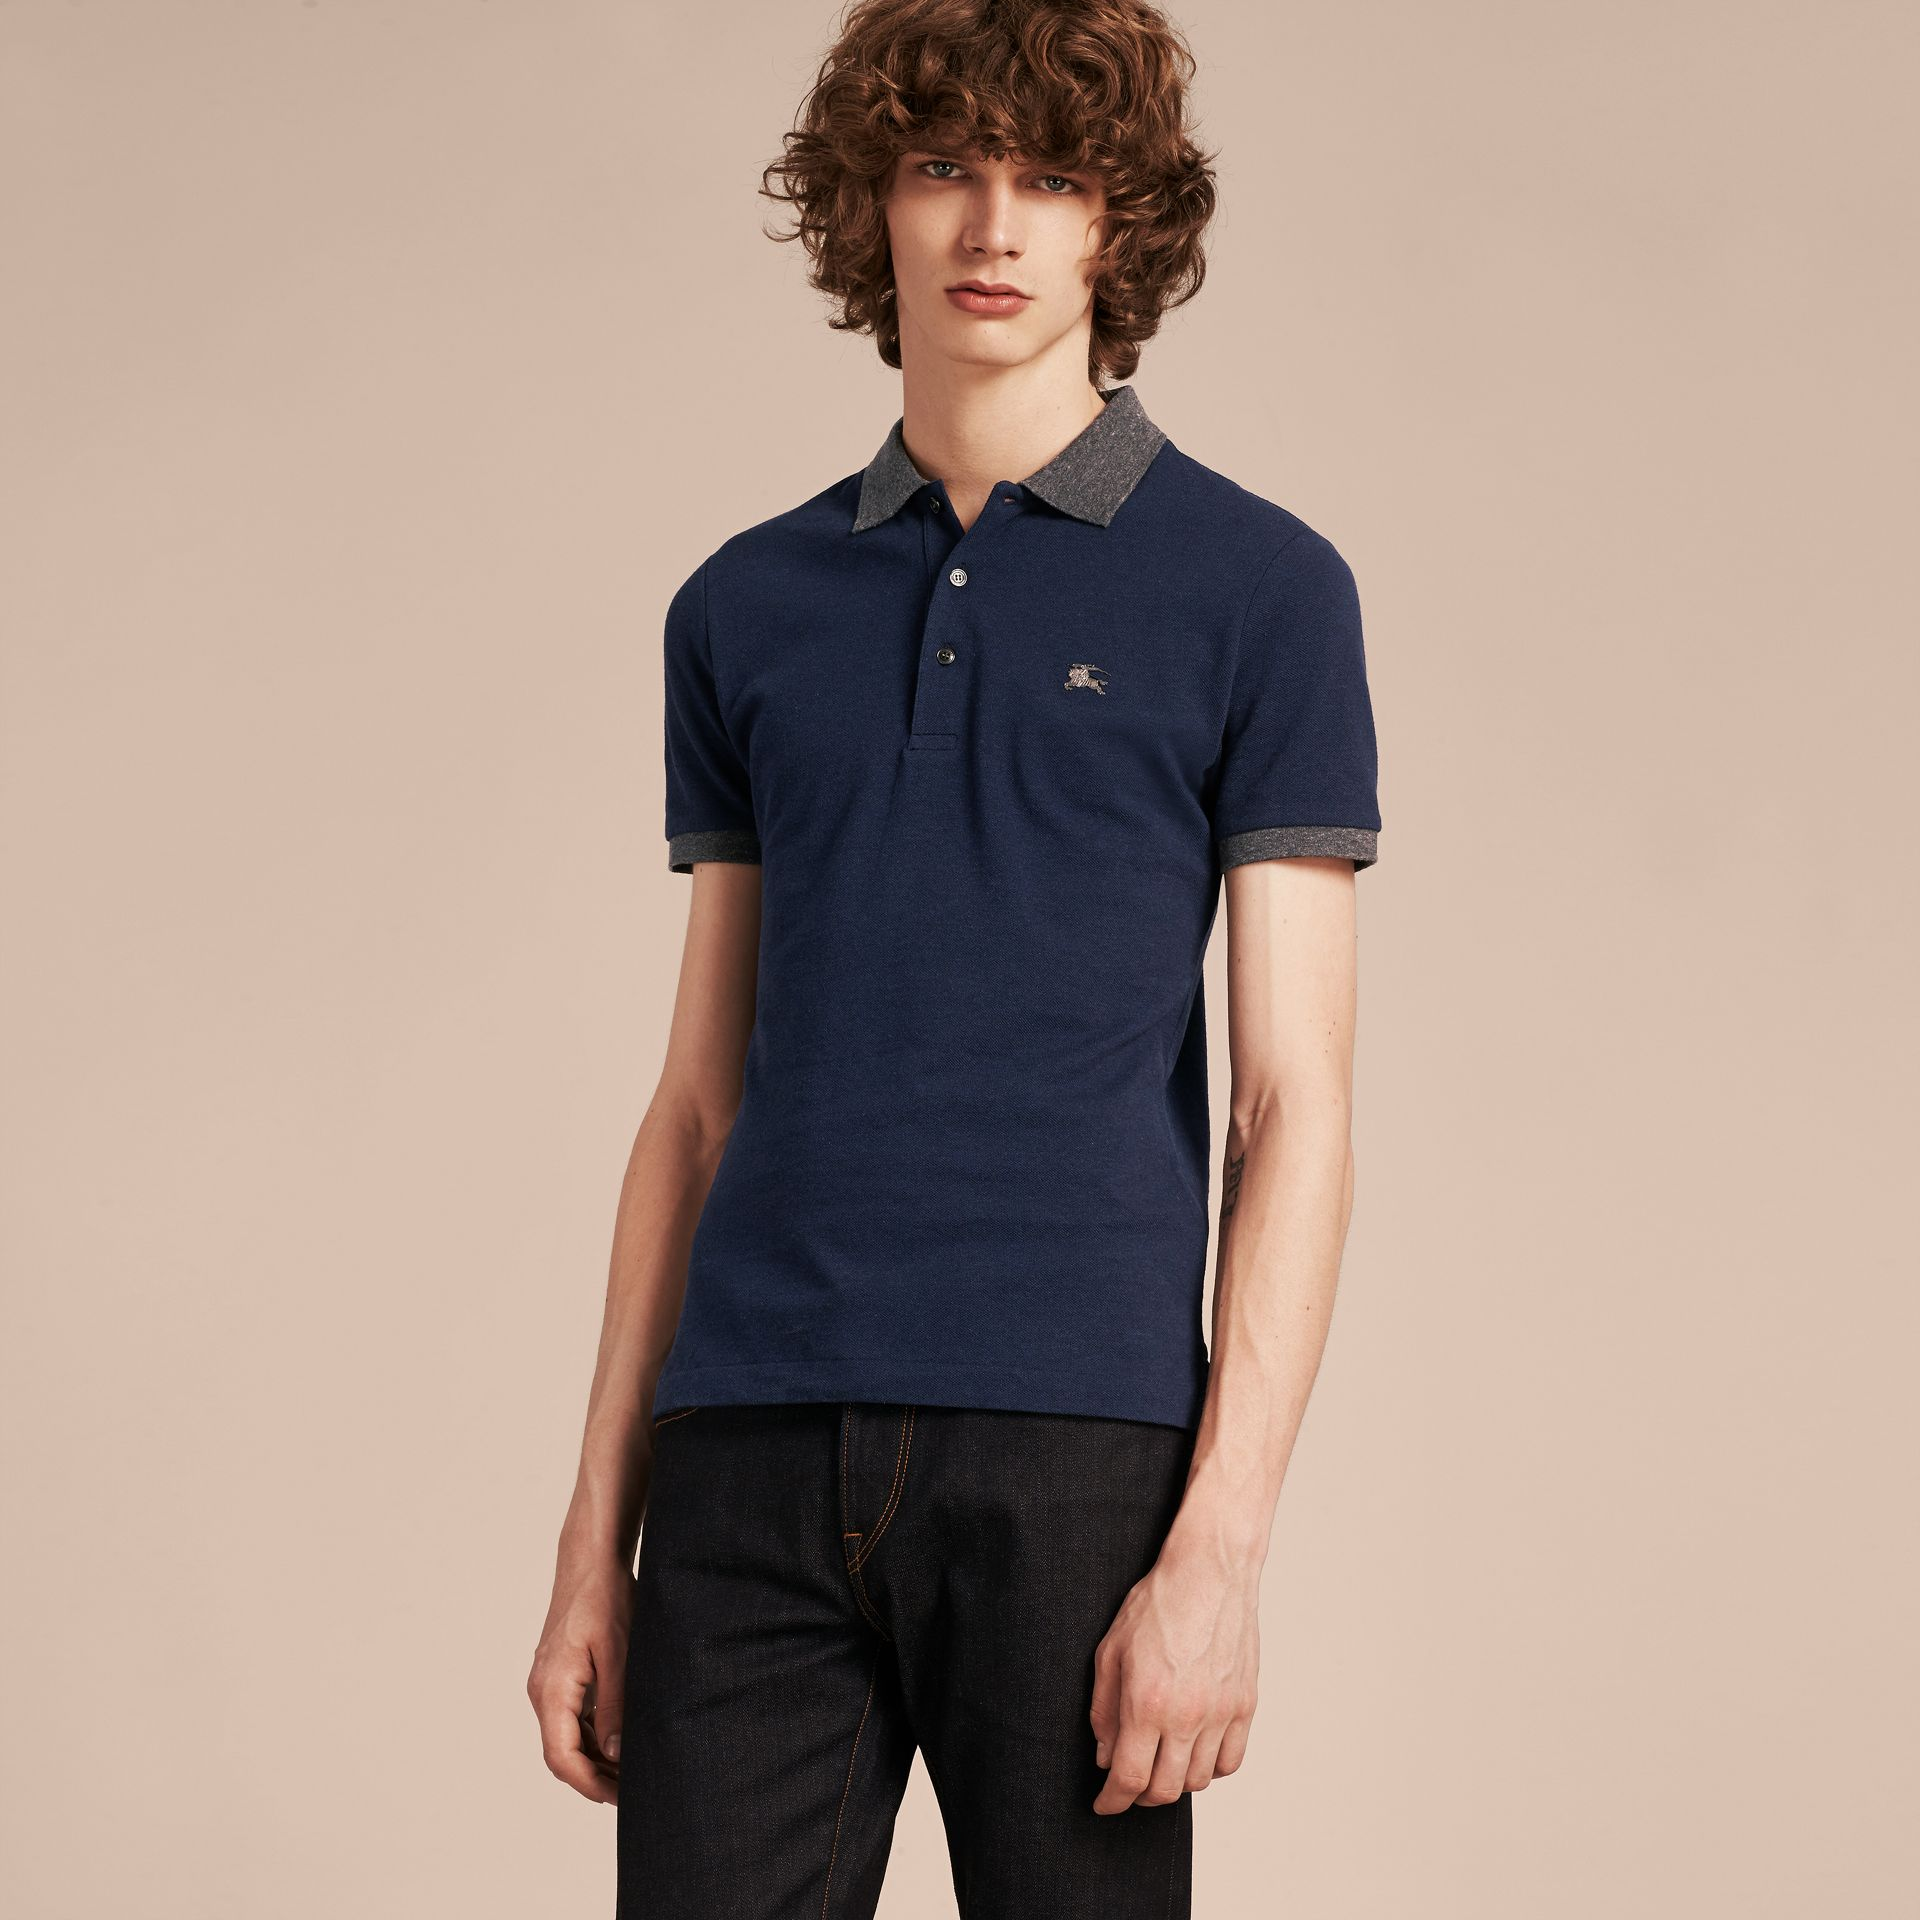 Navy melange Contrast Colour Detail Cotton Piqué Polo Shirt Navy Melange - gallery image 6